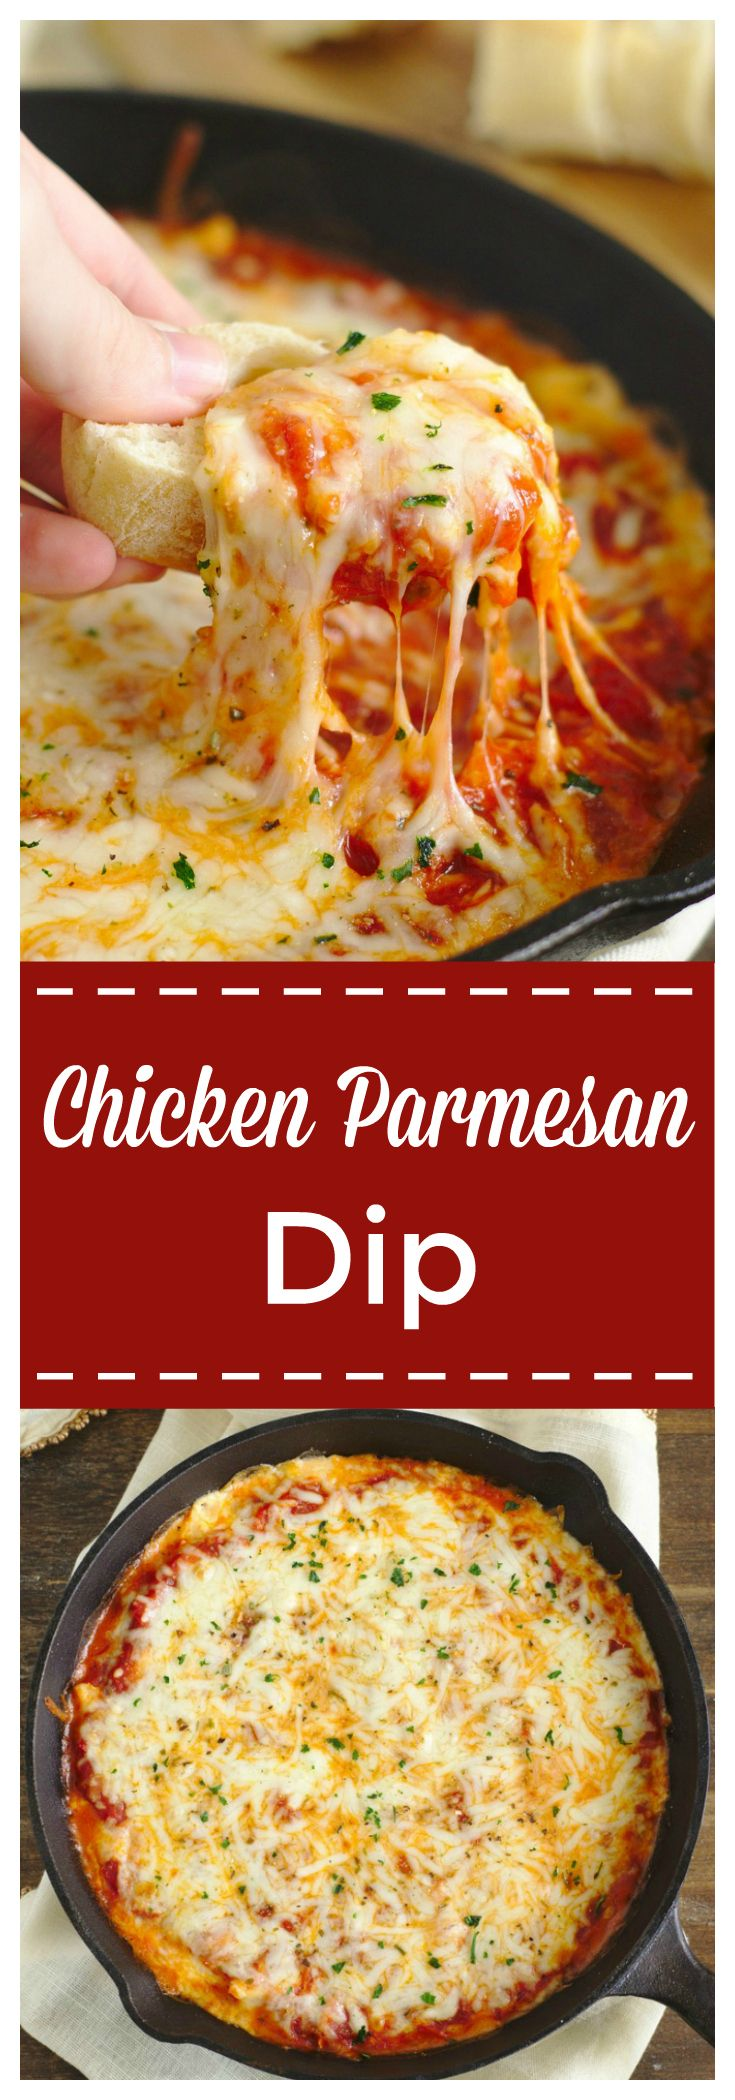 Chicken Parmesan Dip – A quick and easy appetizer recipe that tastes just like chicken parmesan! Ricotta, marinara sauce, chicken, mozzarella, and parmesan layered in a skillet and baked until hot! This is the ultimate easy dip recipe! #dip #chicken #parmesan #appetizer